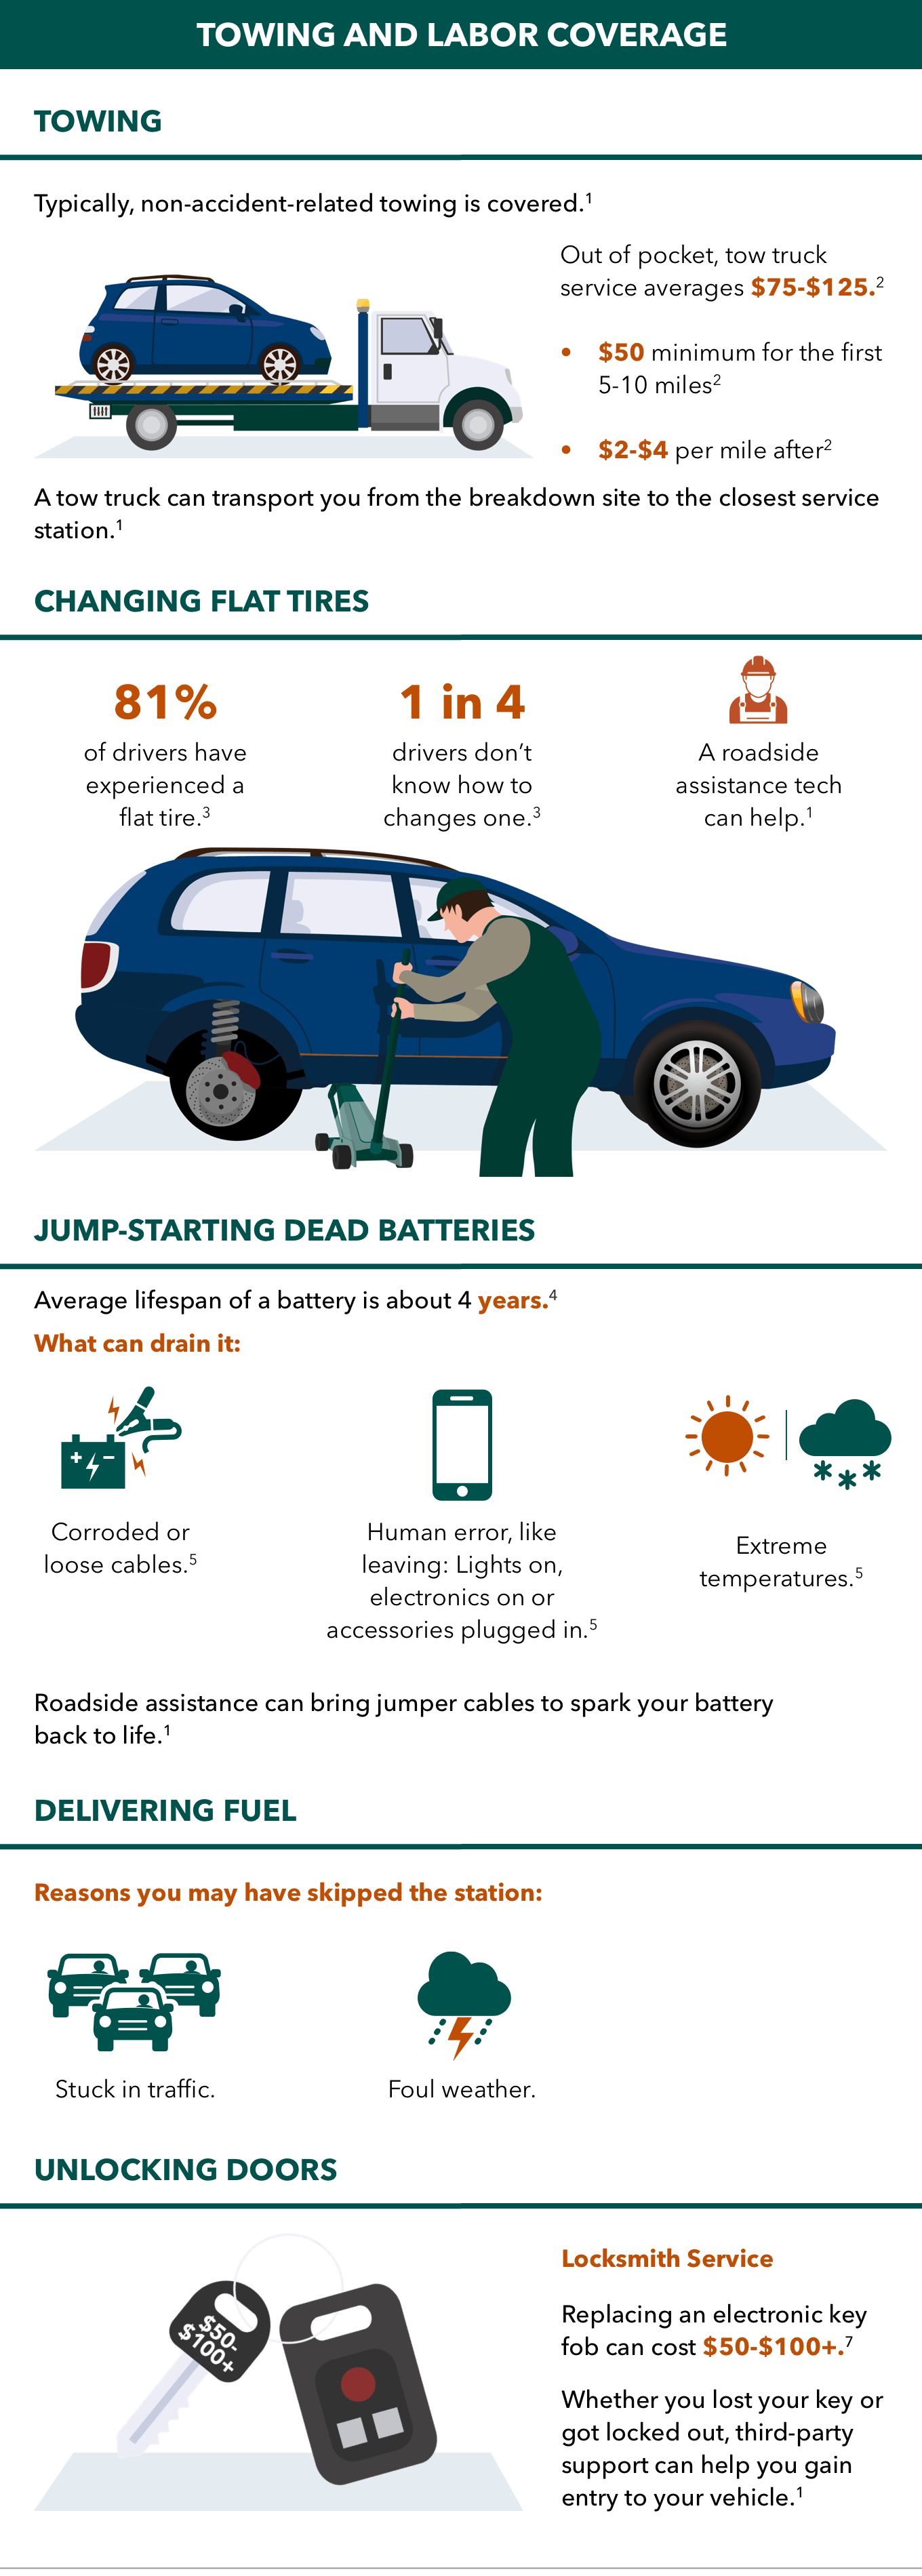 towing and labor coverage infographic